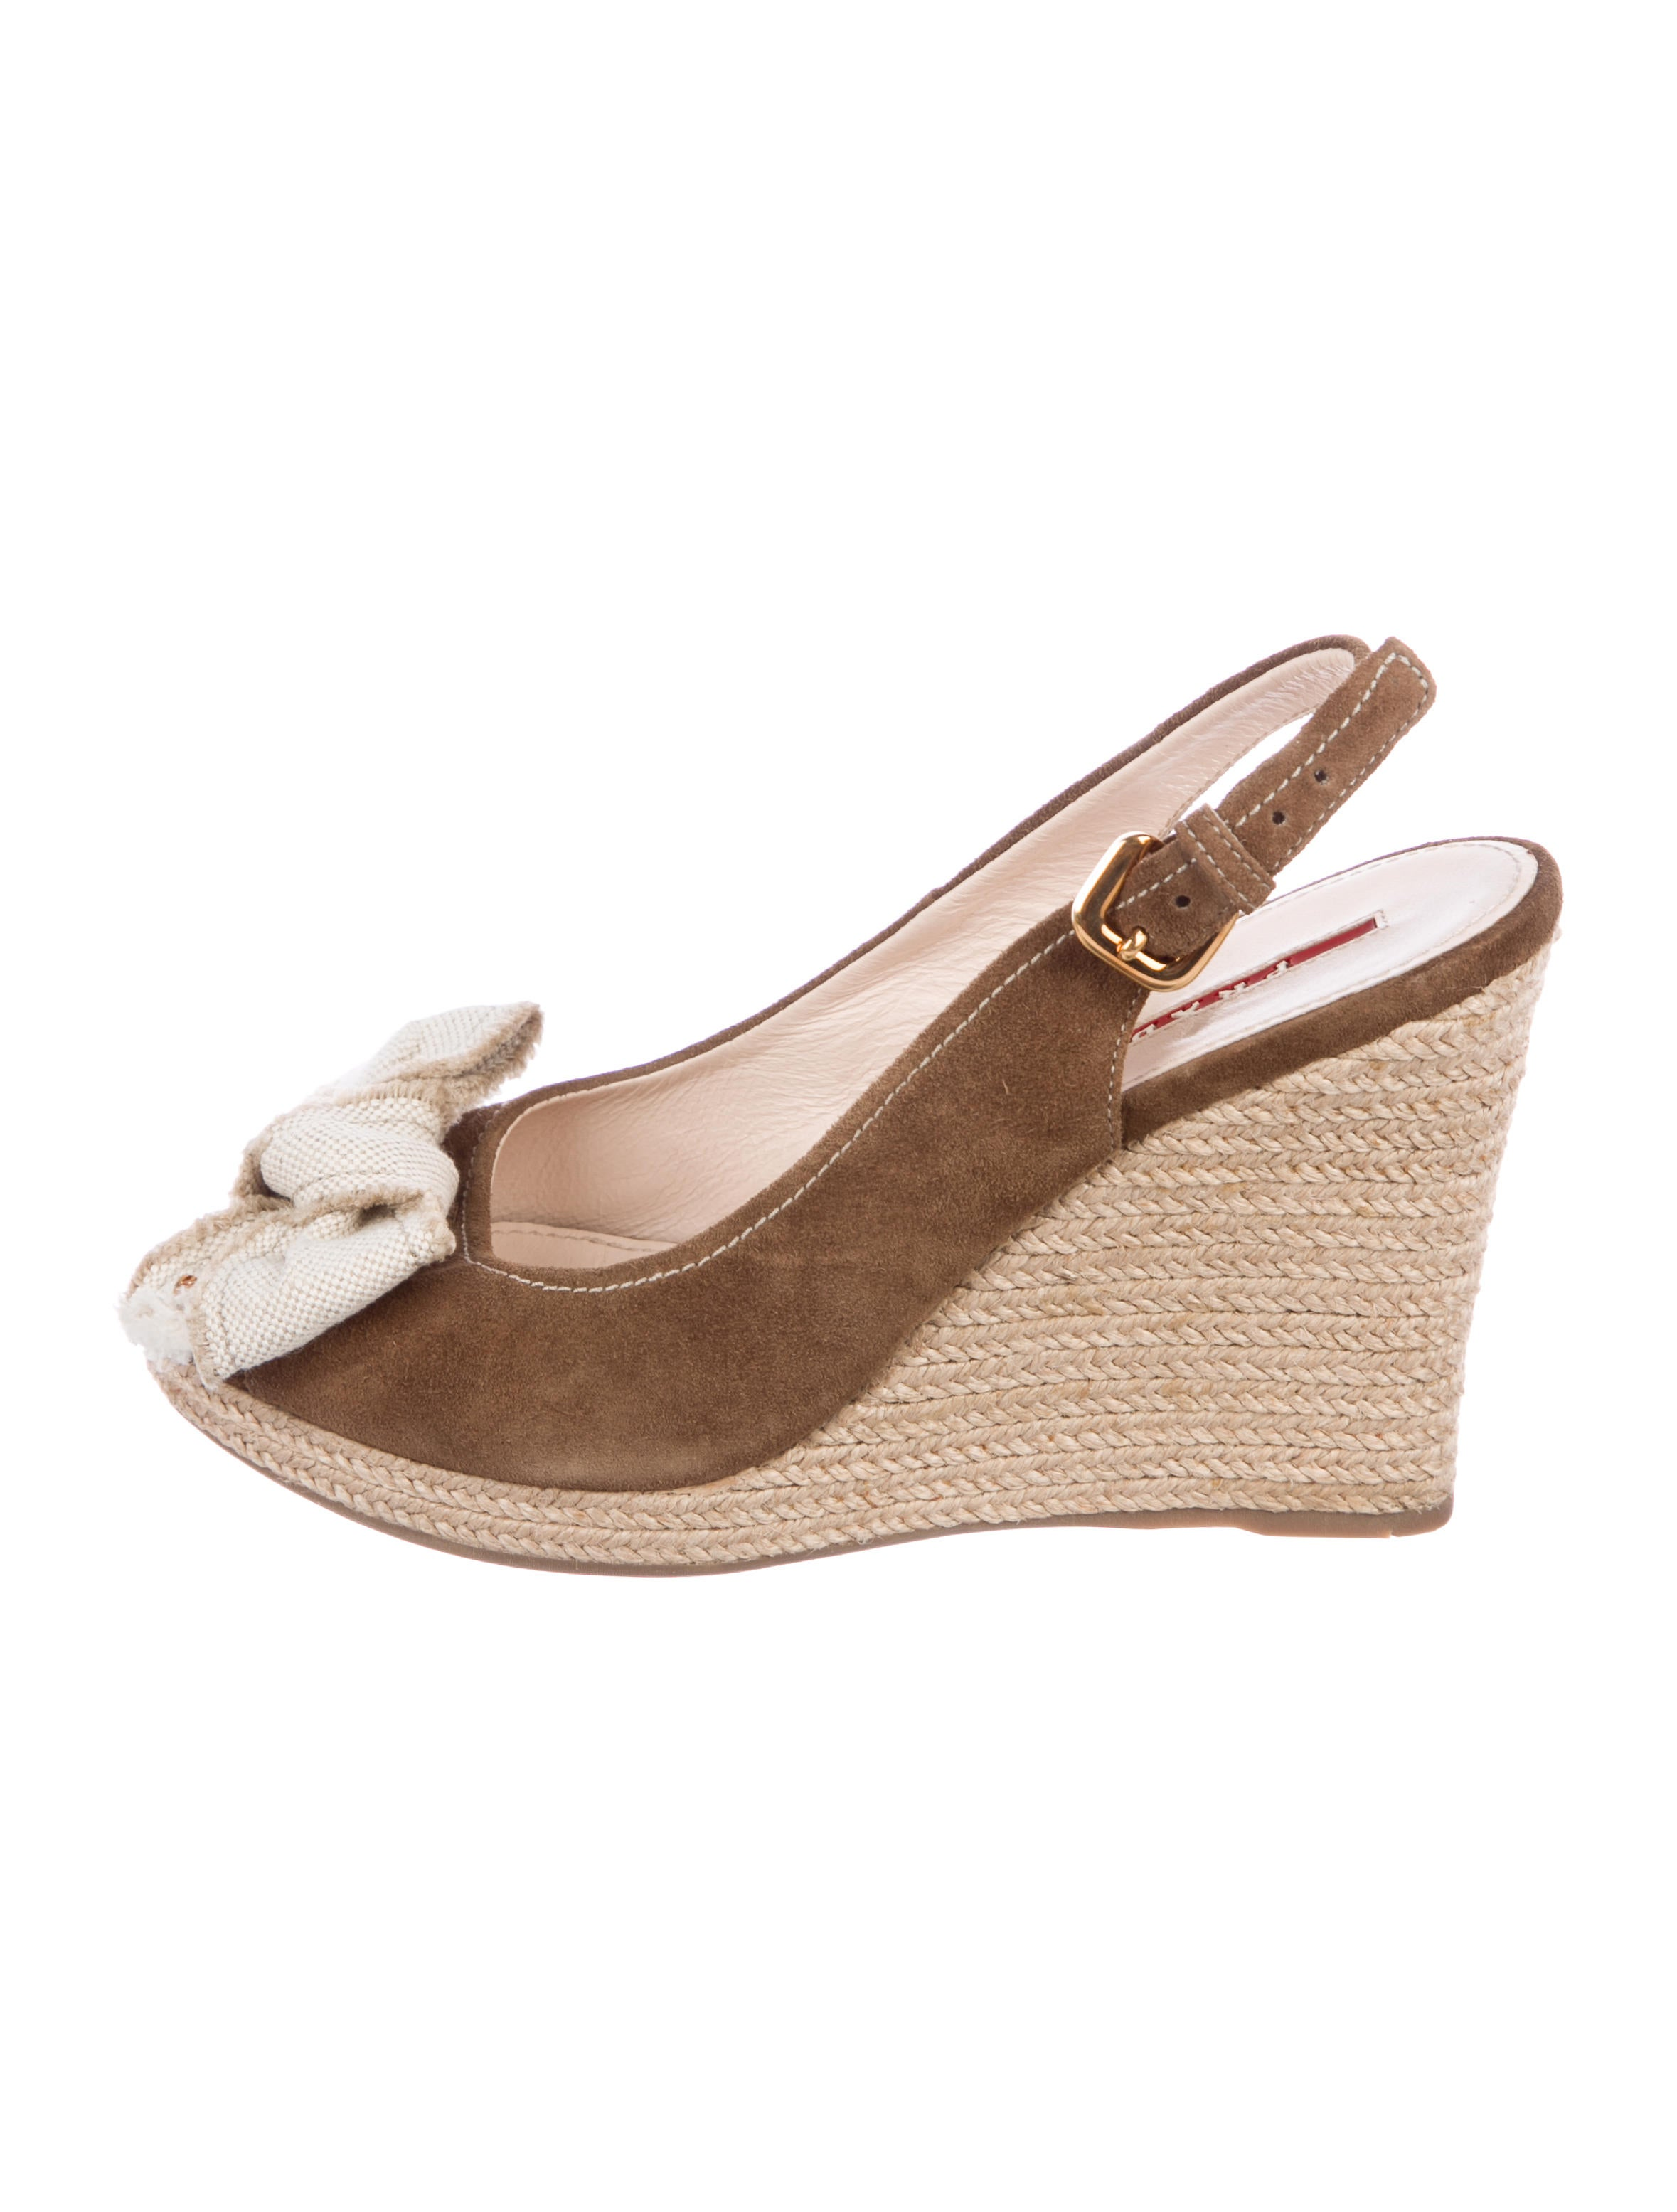 clearance collections Prada Sport Logo Espadrille Wedges discount under $60 clearance pre order 7FbBZXspz